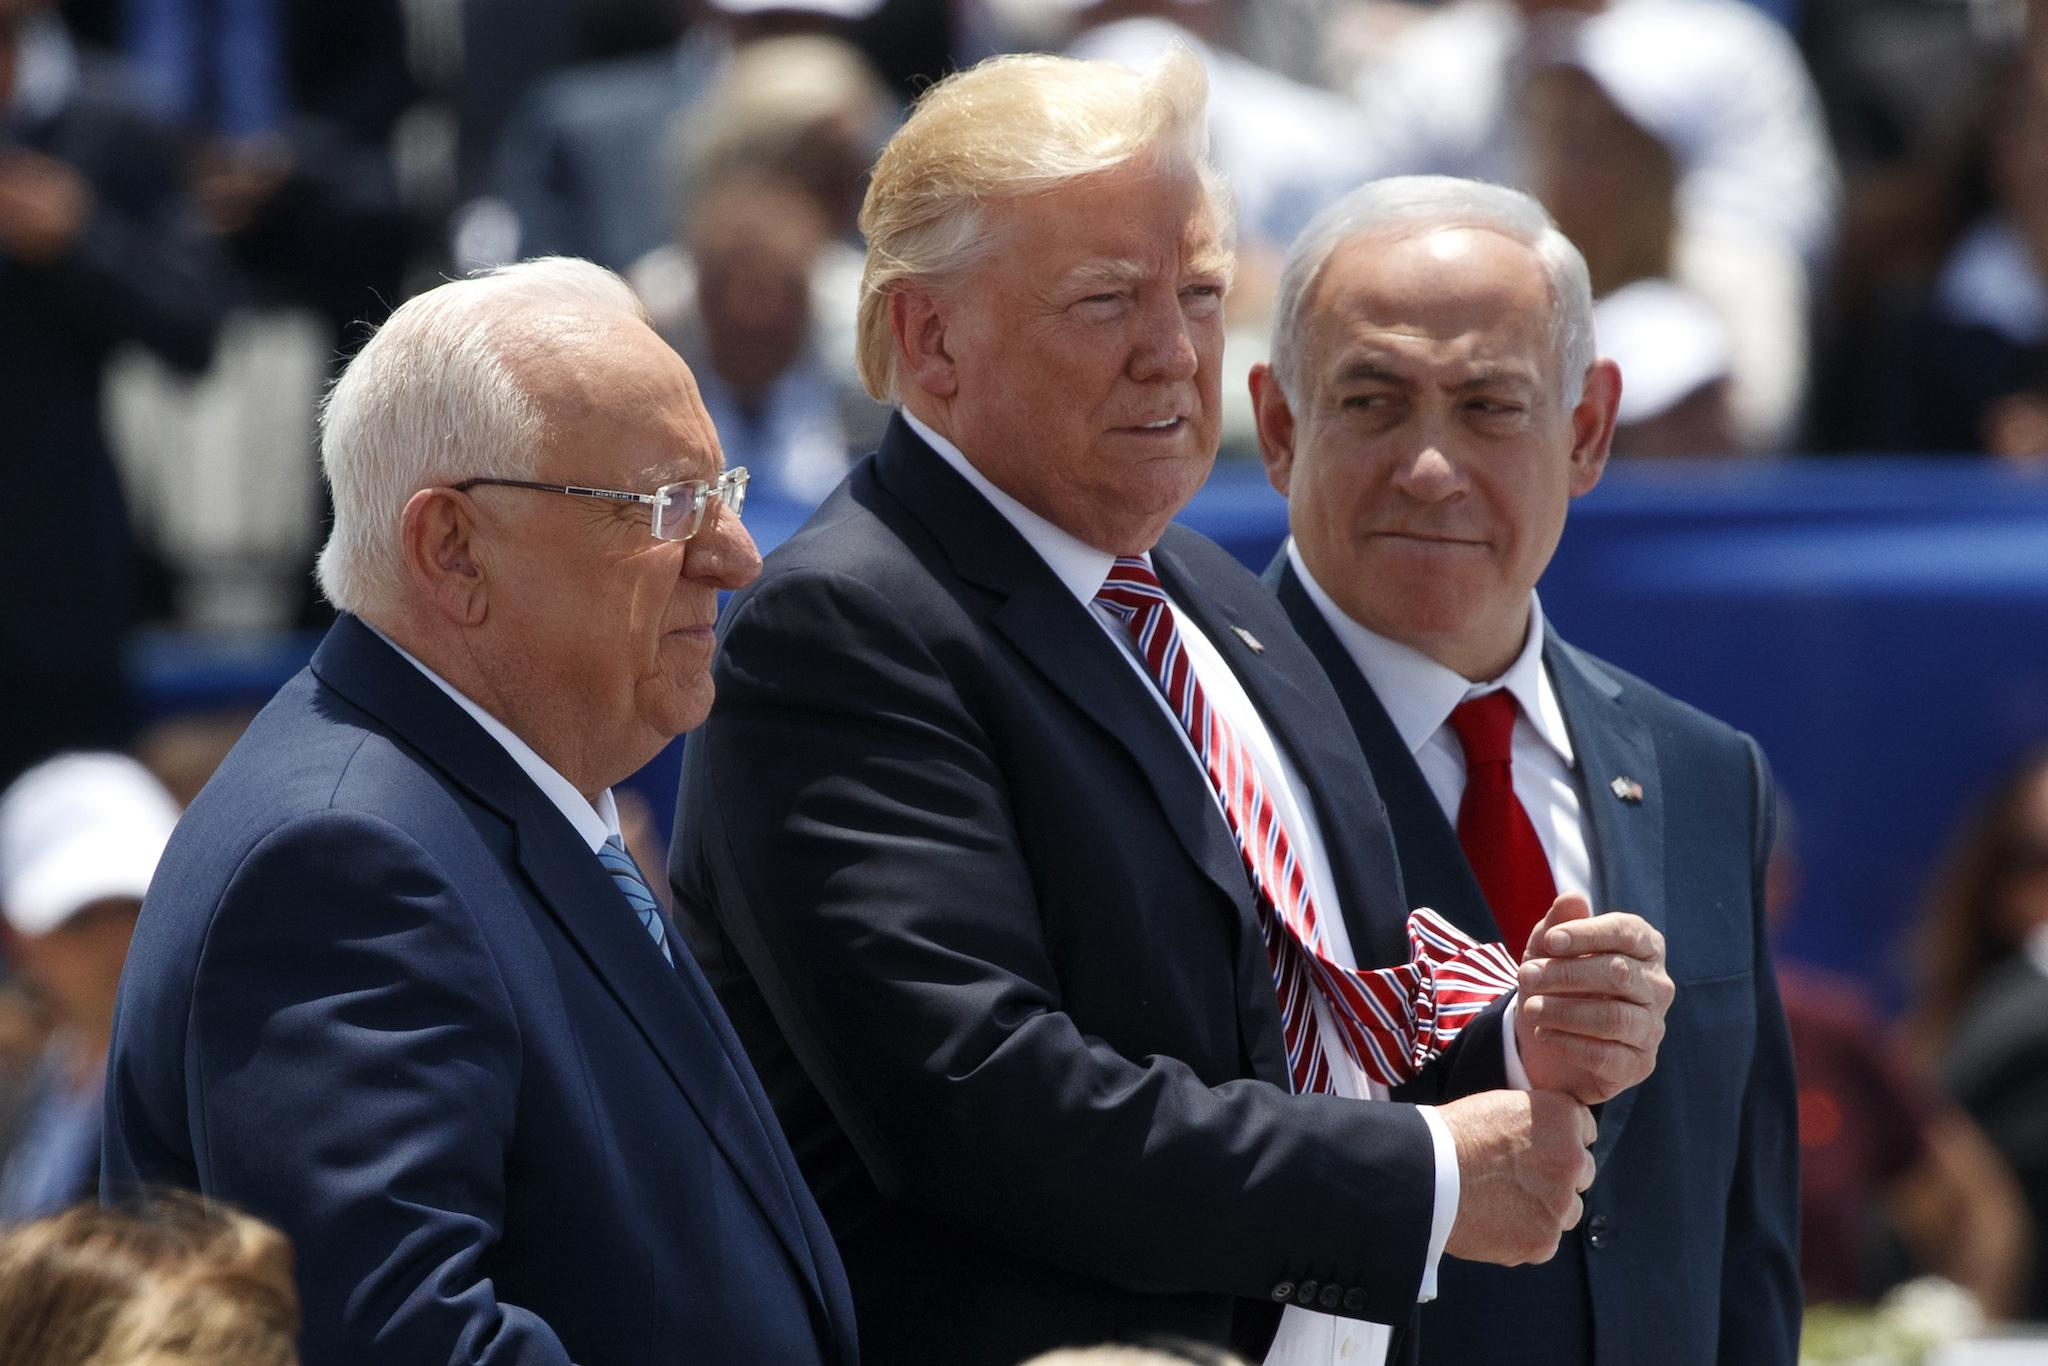 Israeli pm netanyahu wishes muslims ramadan kareem the independent trump seems to accidentally confirm israel was source of intelligence kristyandbryce Images